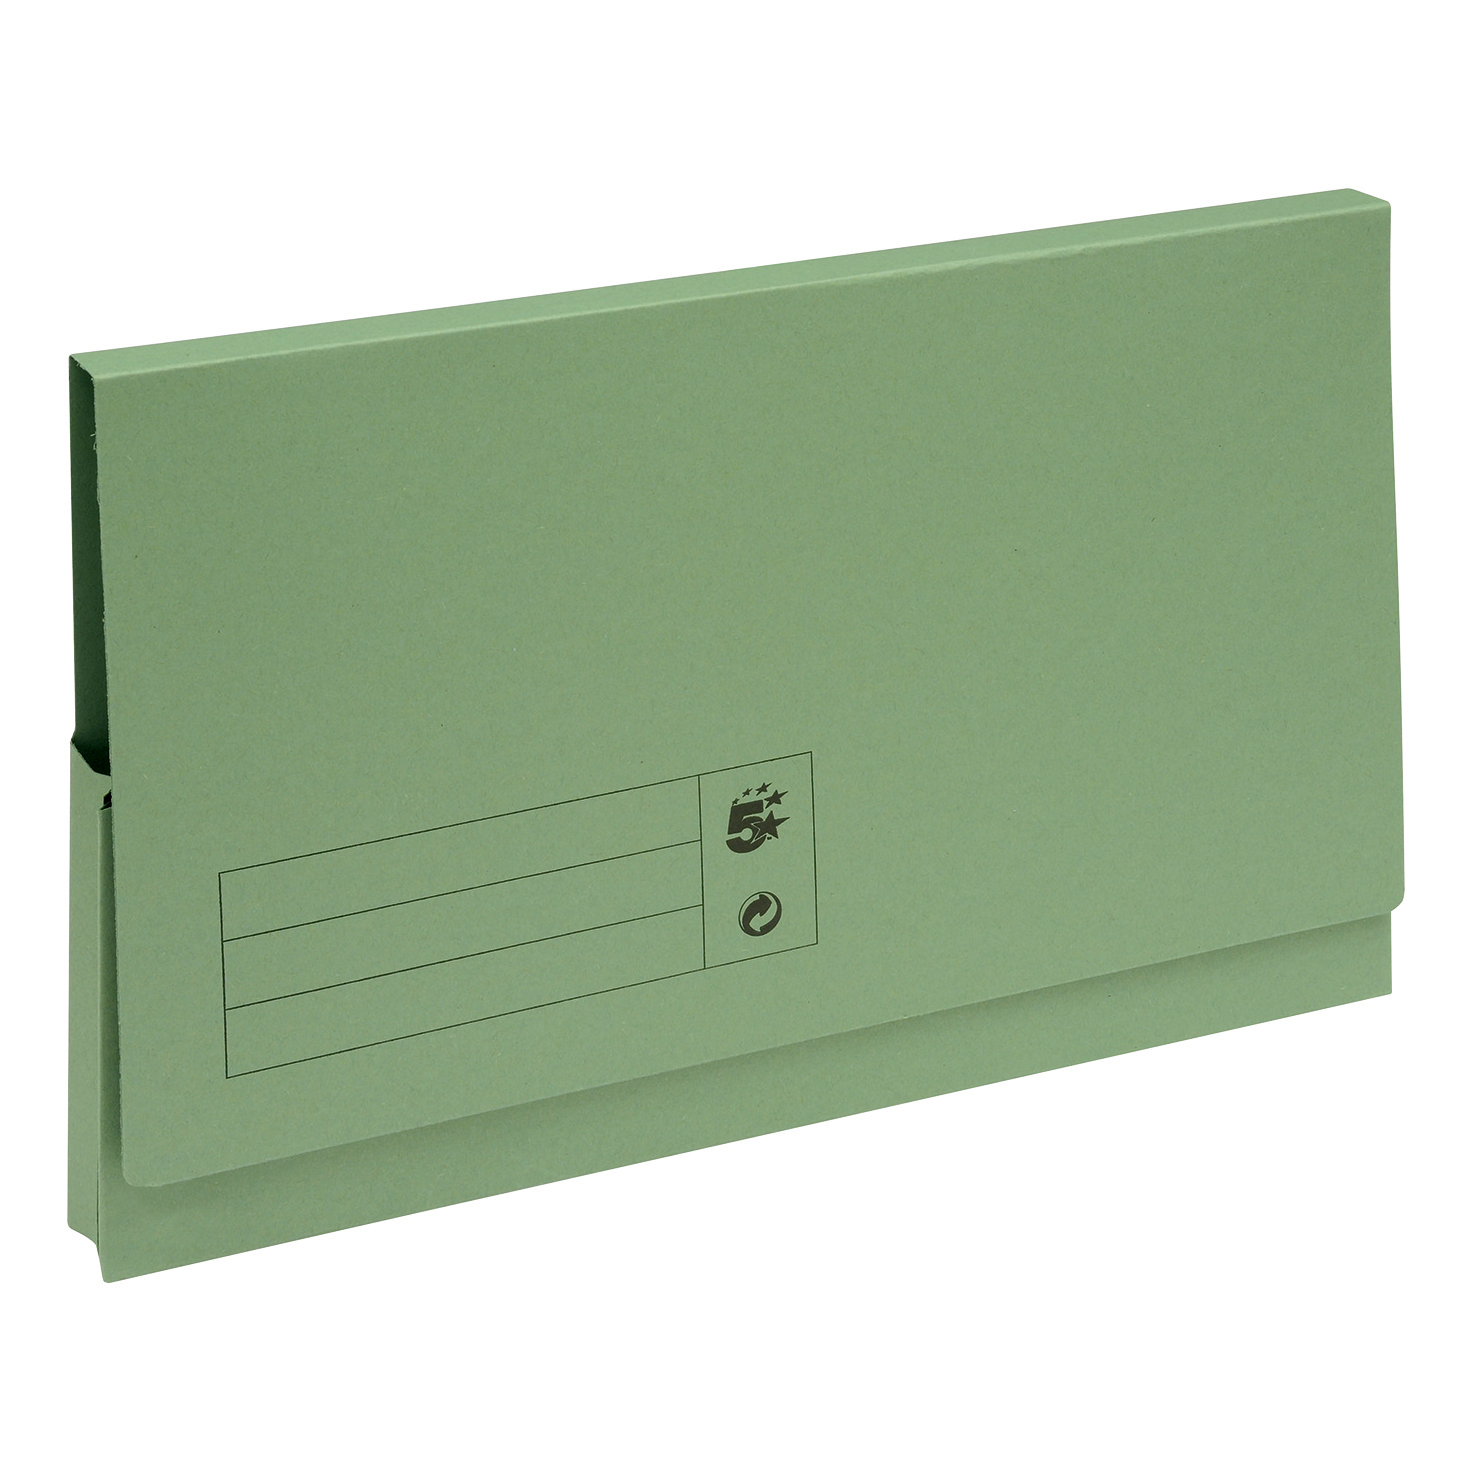 5 Star Office Document Wallet Full Flap 285gsm Recycled Capacity 32mm Foolscap Green Pack 50